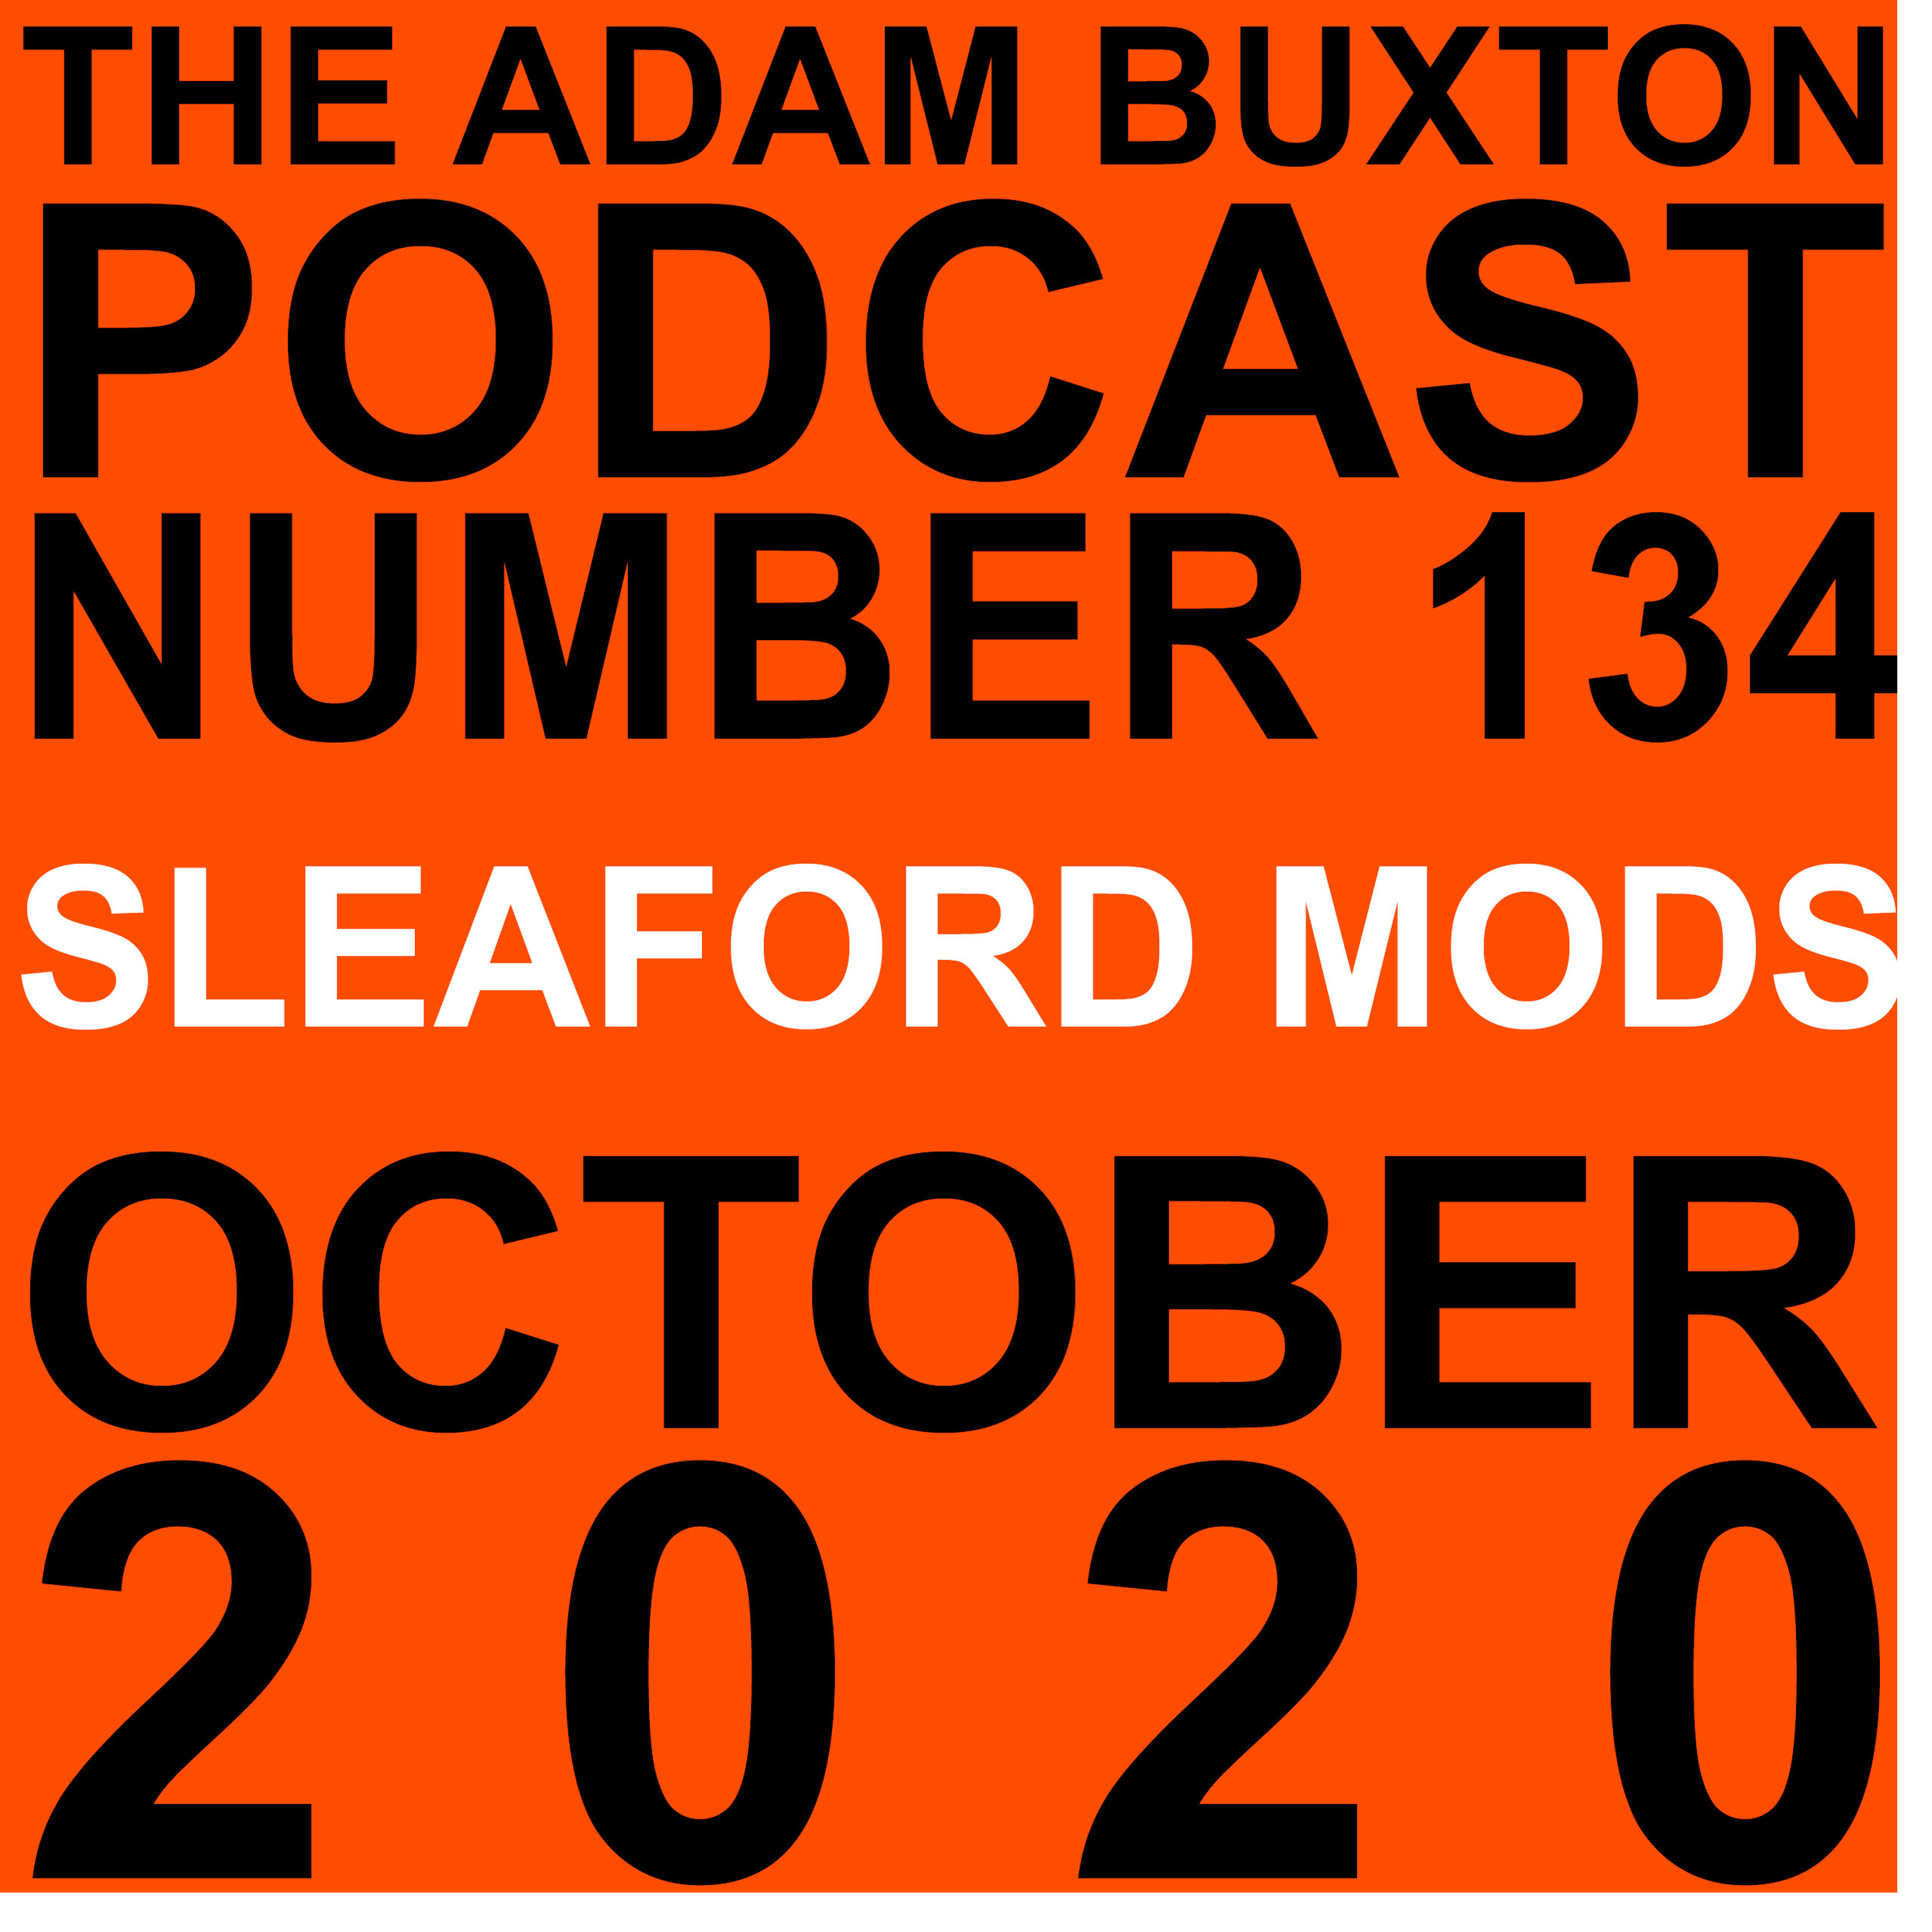 EP.134 - SLEAFORD MODS